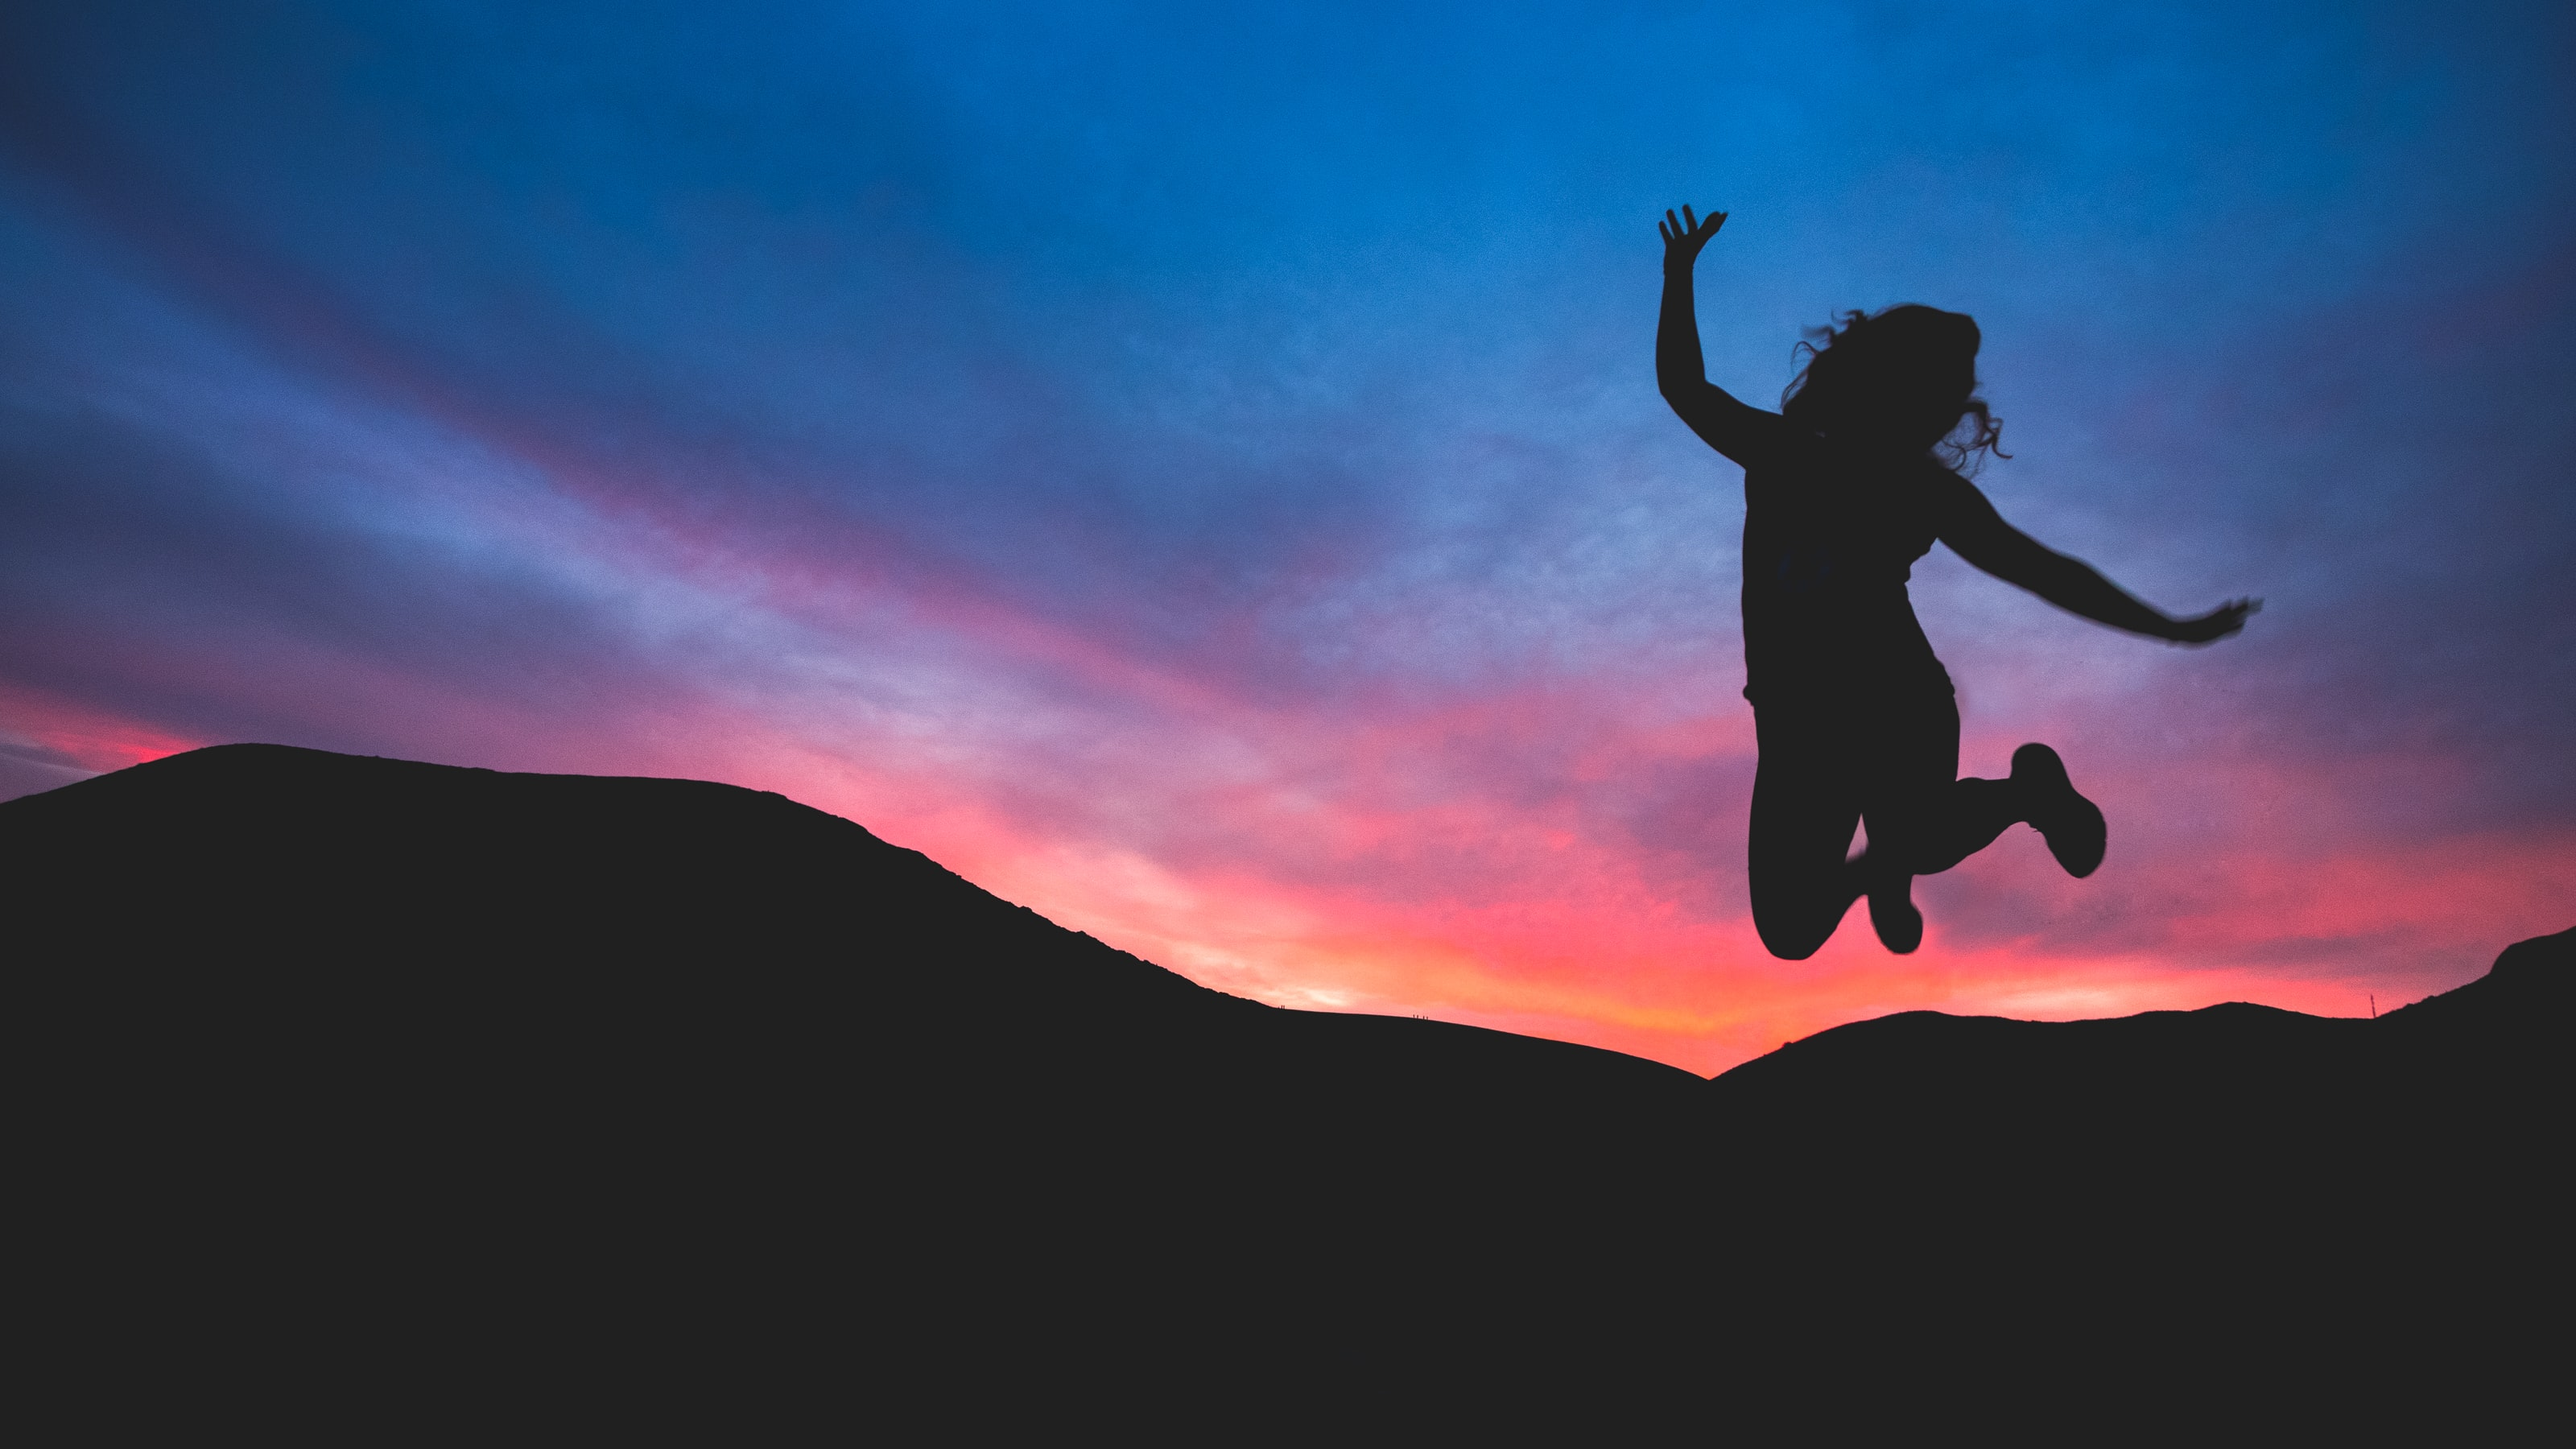 Jumping woman with sunset background.